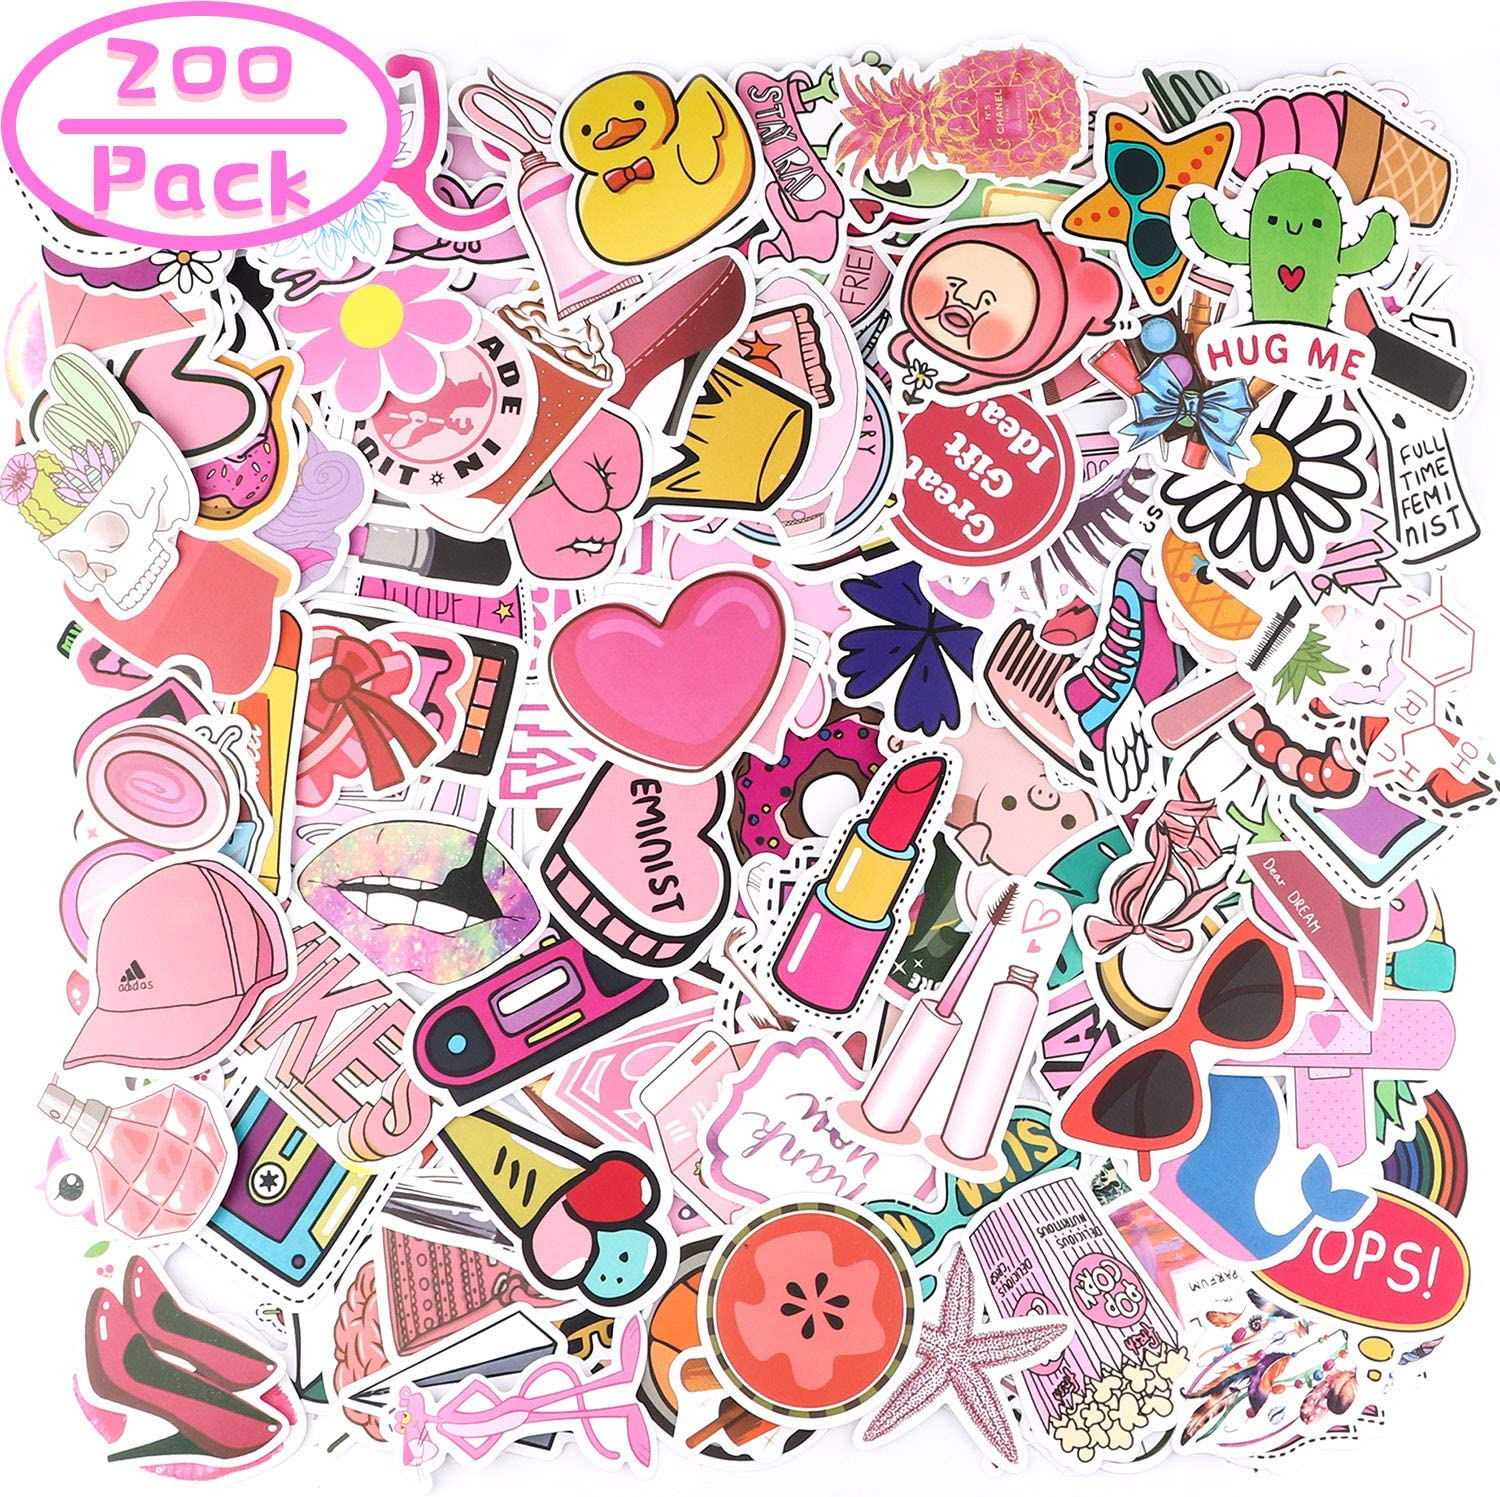 Tinabless 200 Pcs Cute Stickers, Pink Vsco Stickers for Water Bottles, Laptop Stickers Pack Cute Aesthetics Stickers for Teens, Girls, Women, Vinyl Stickers Waterproof